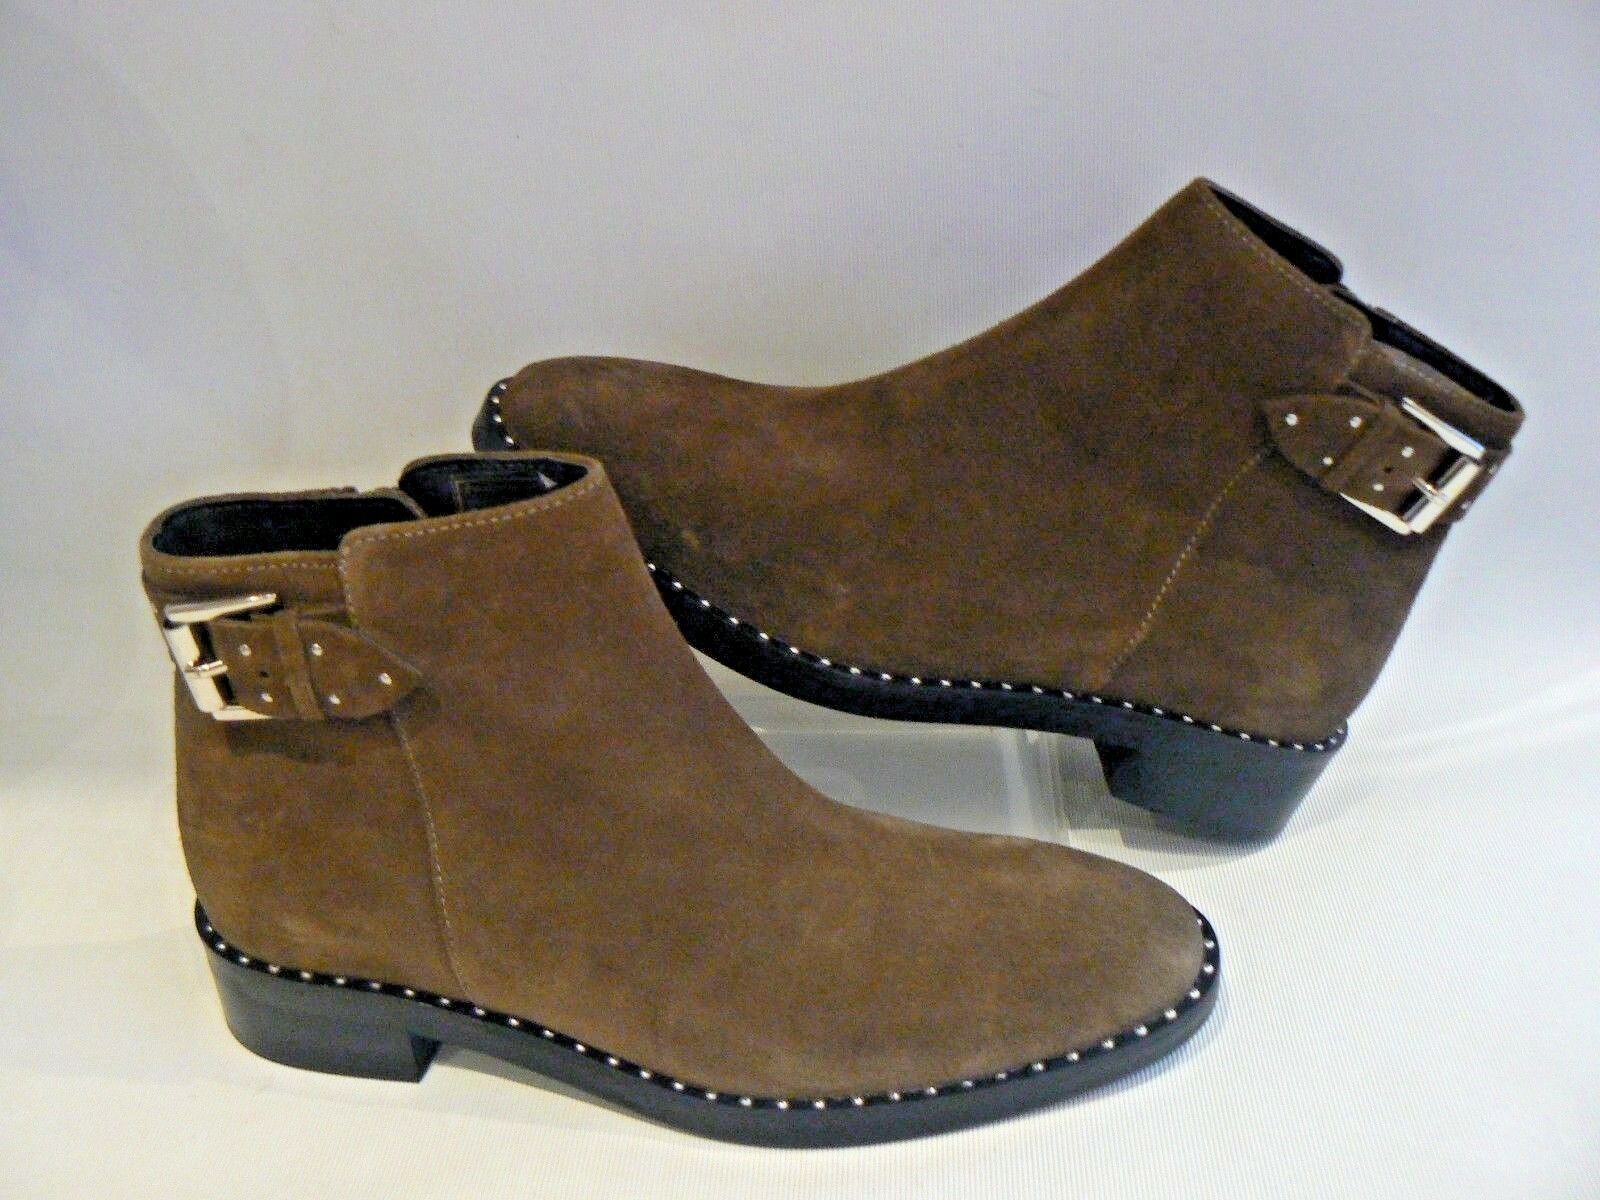 MARKS & SPENCER Suede Ankle Boots Insoila UK Size 4.5 - 7.5 NEW